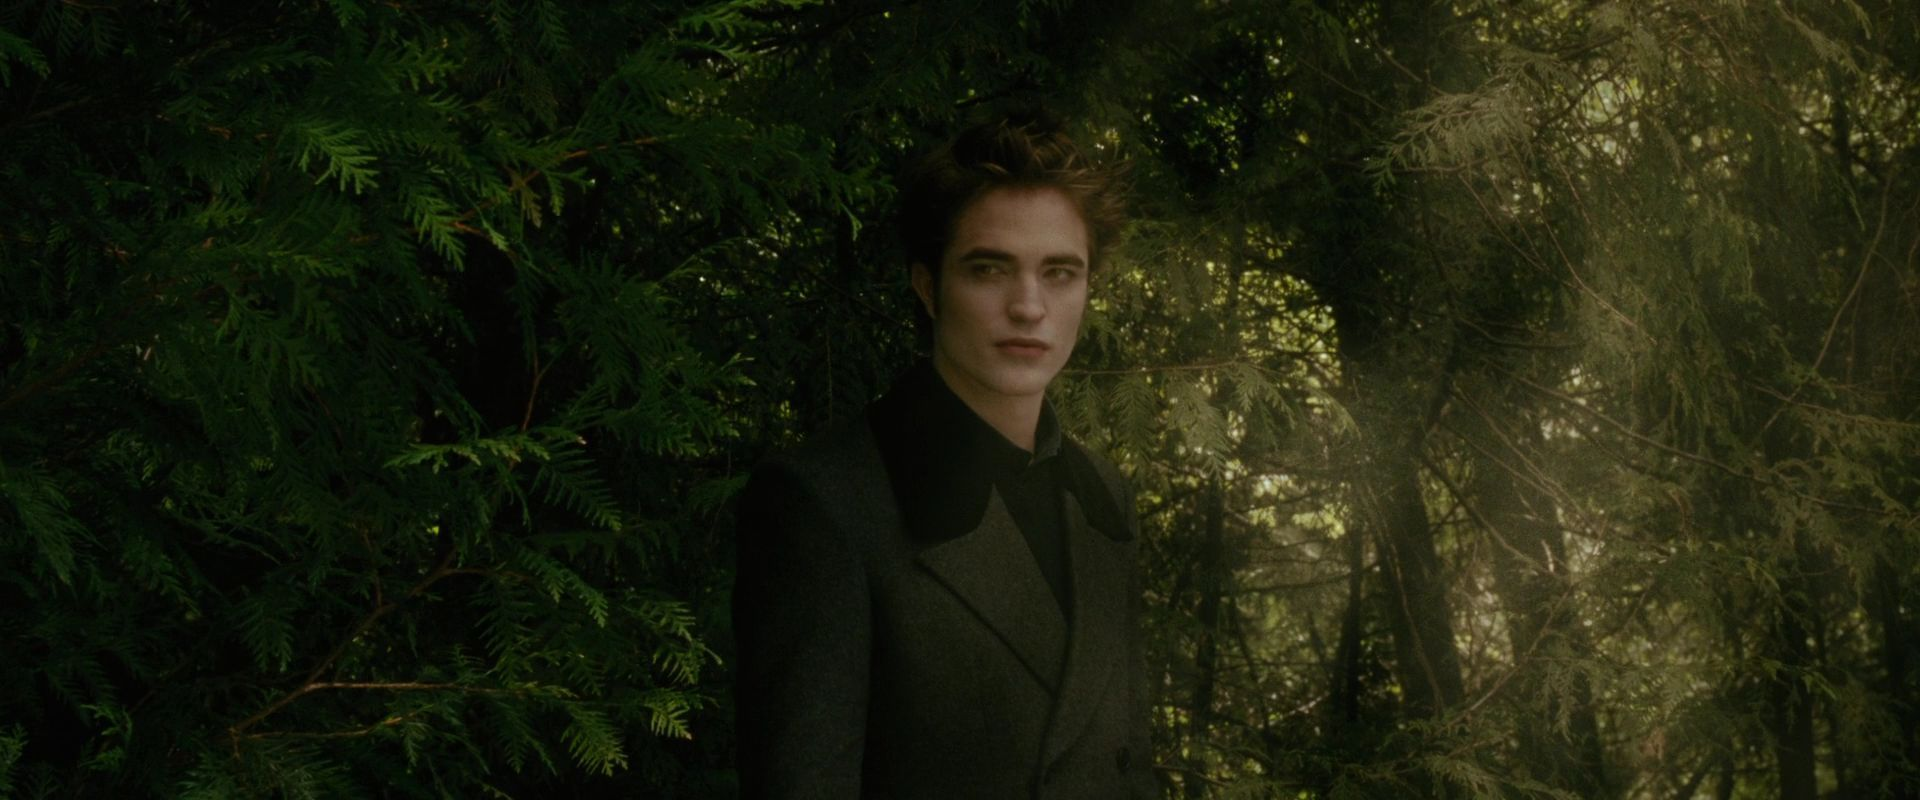 New Moon Screencaps Edward Cullen Image 15114274 Fanpop